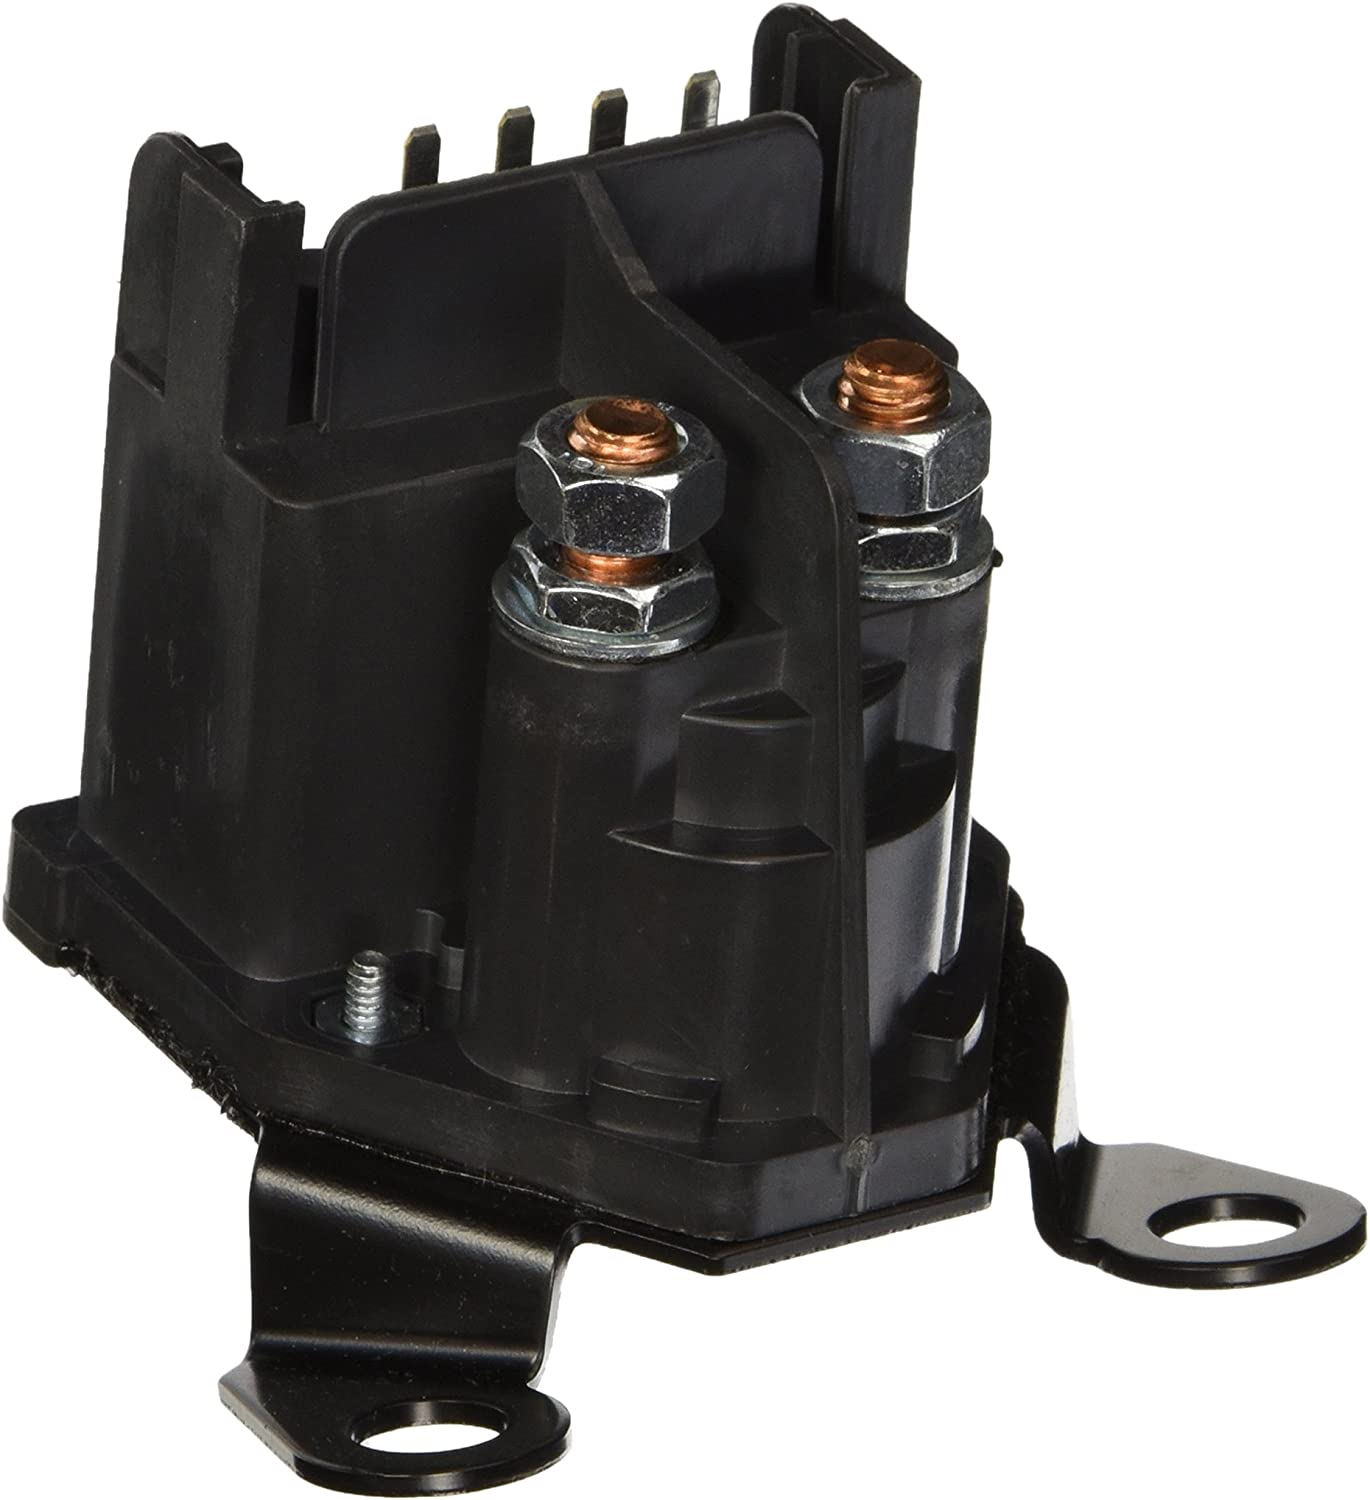 Standard Motor Products Relay Sale Max 88% OFF RY139